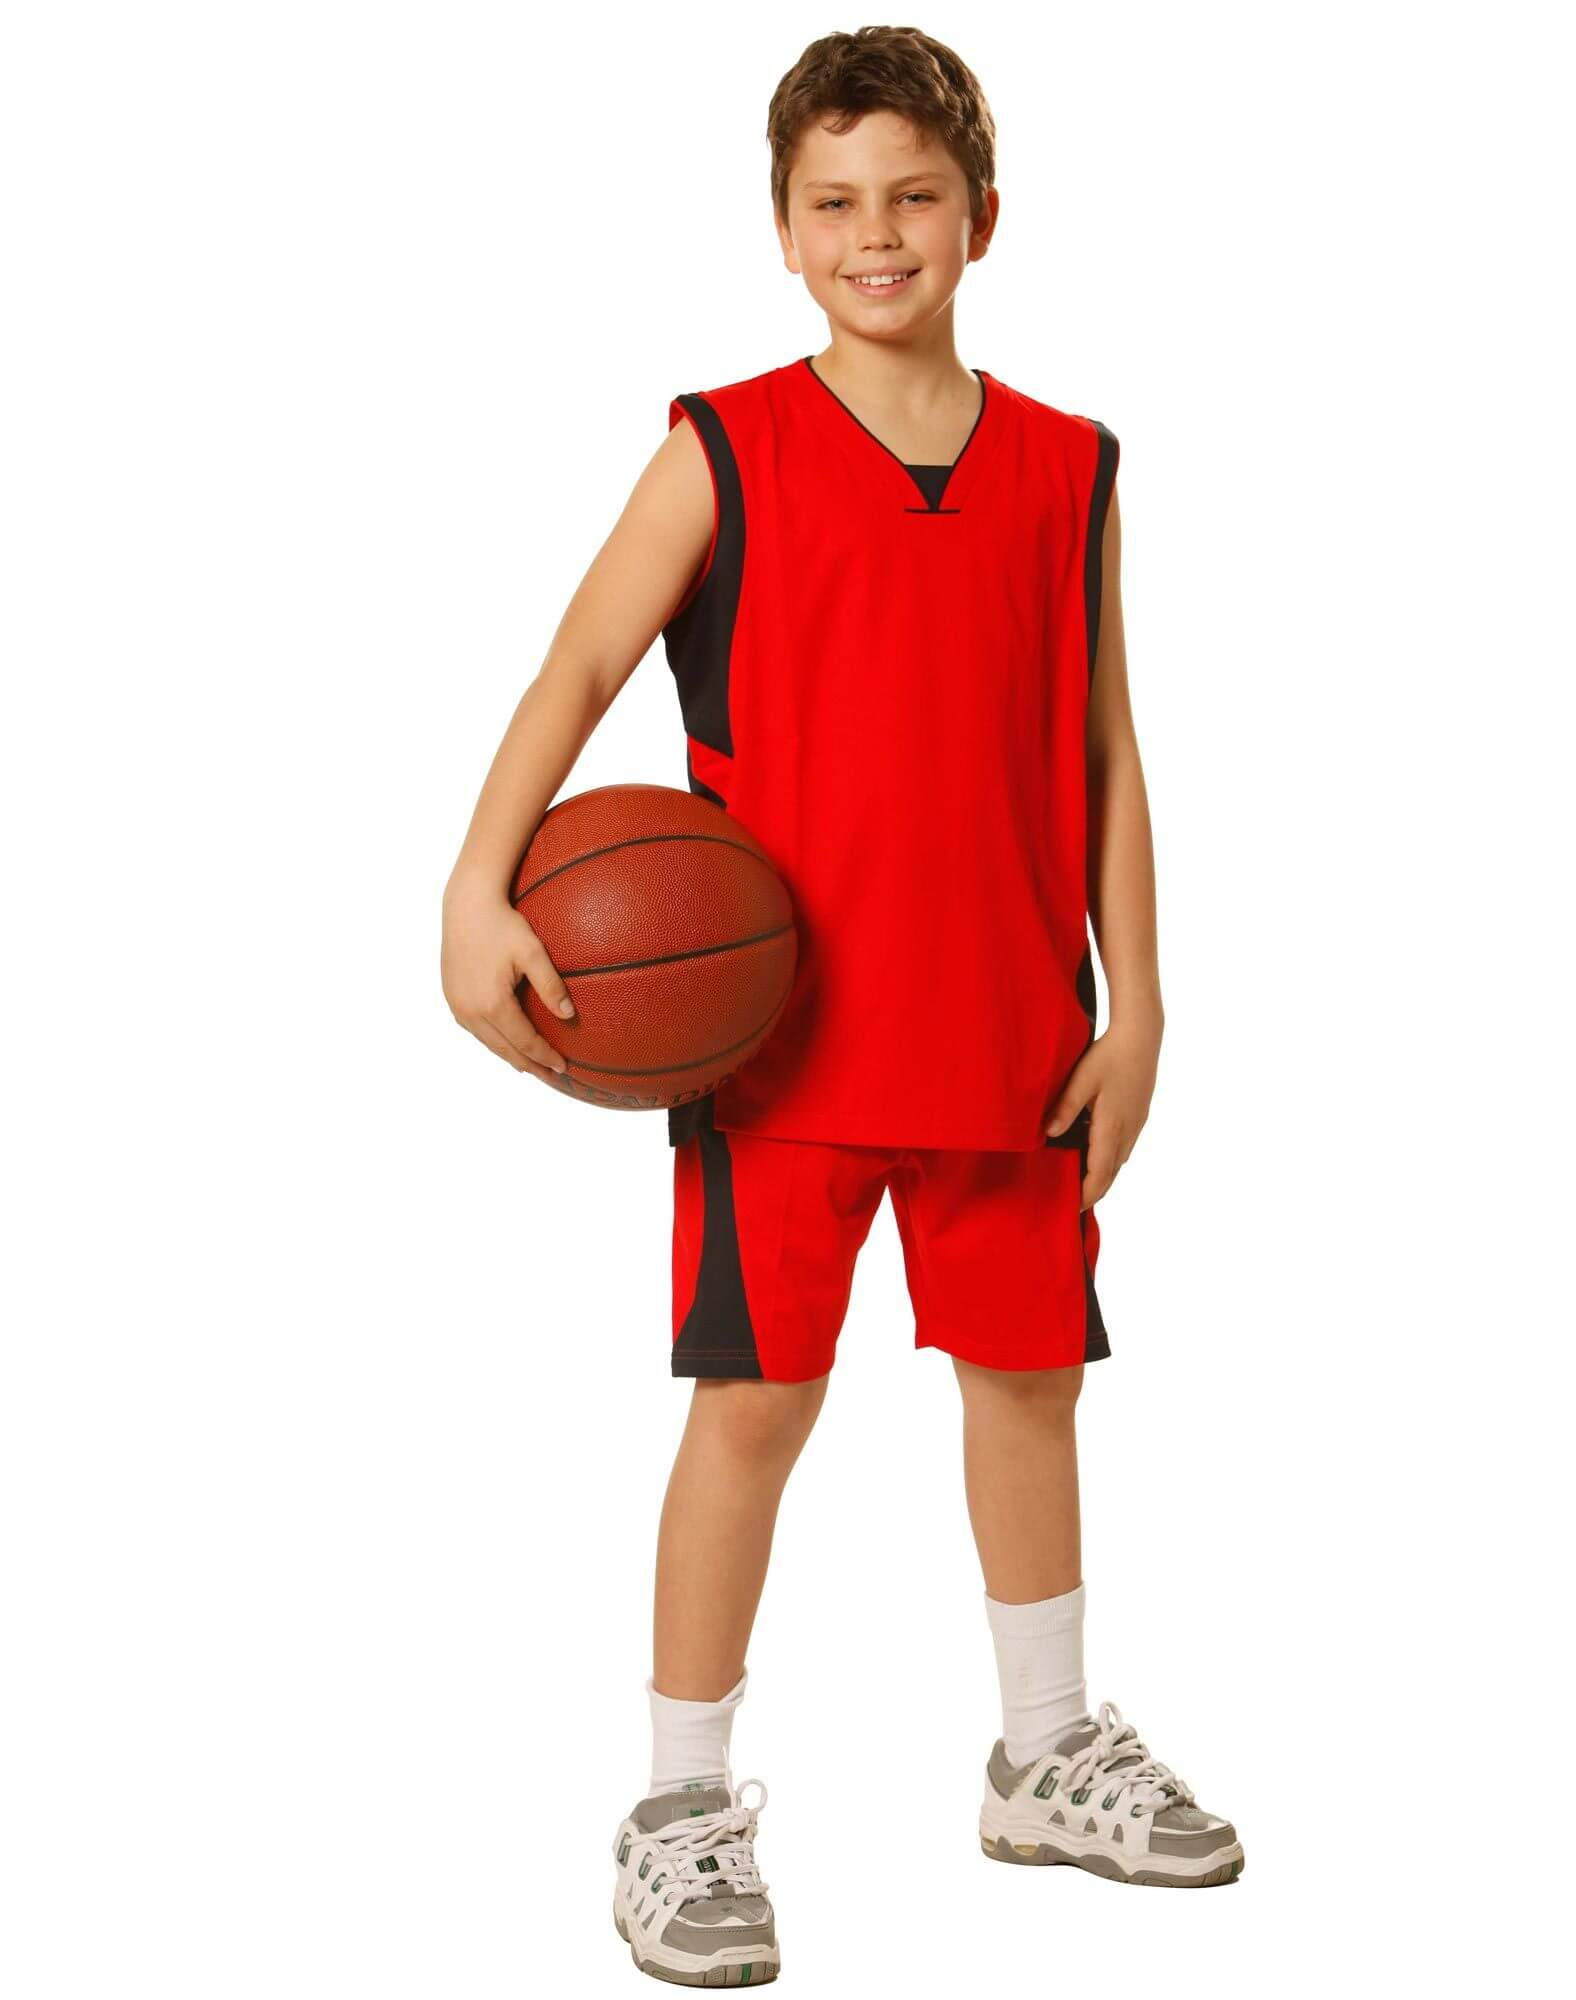 Kids Basketball Jerseys Manufacturers in Patna